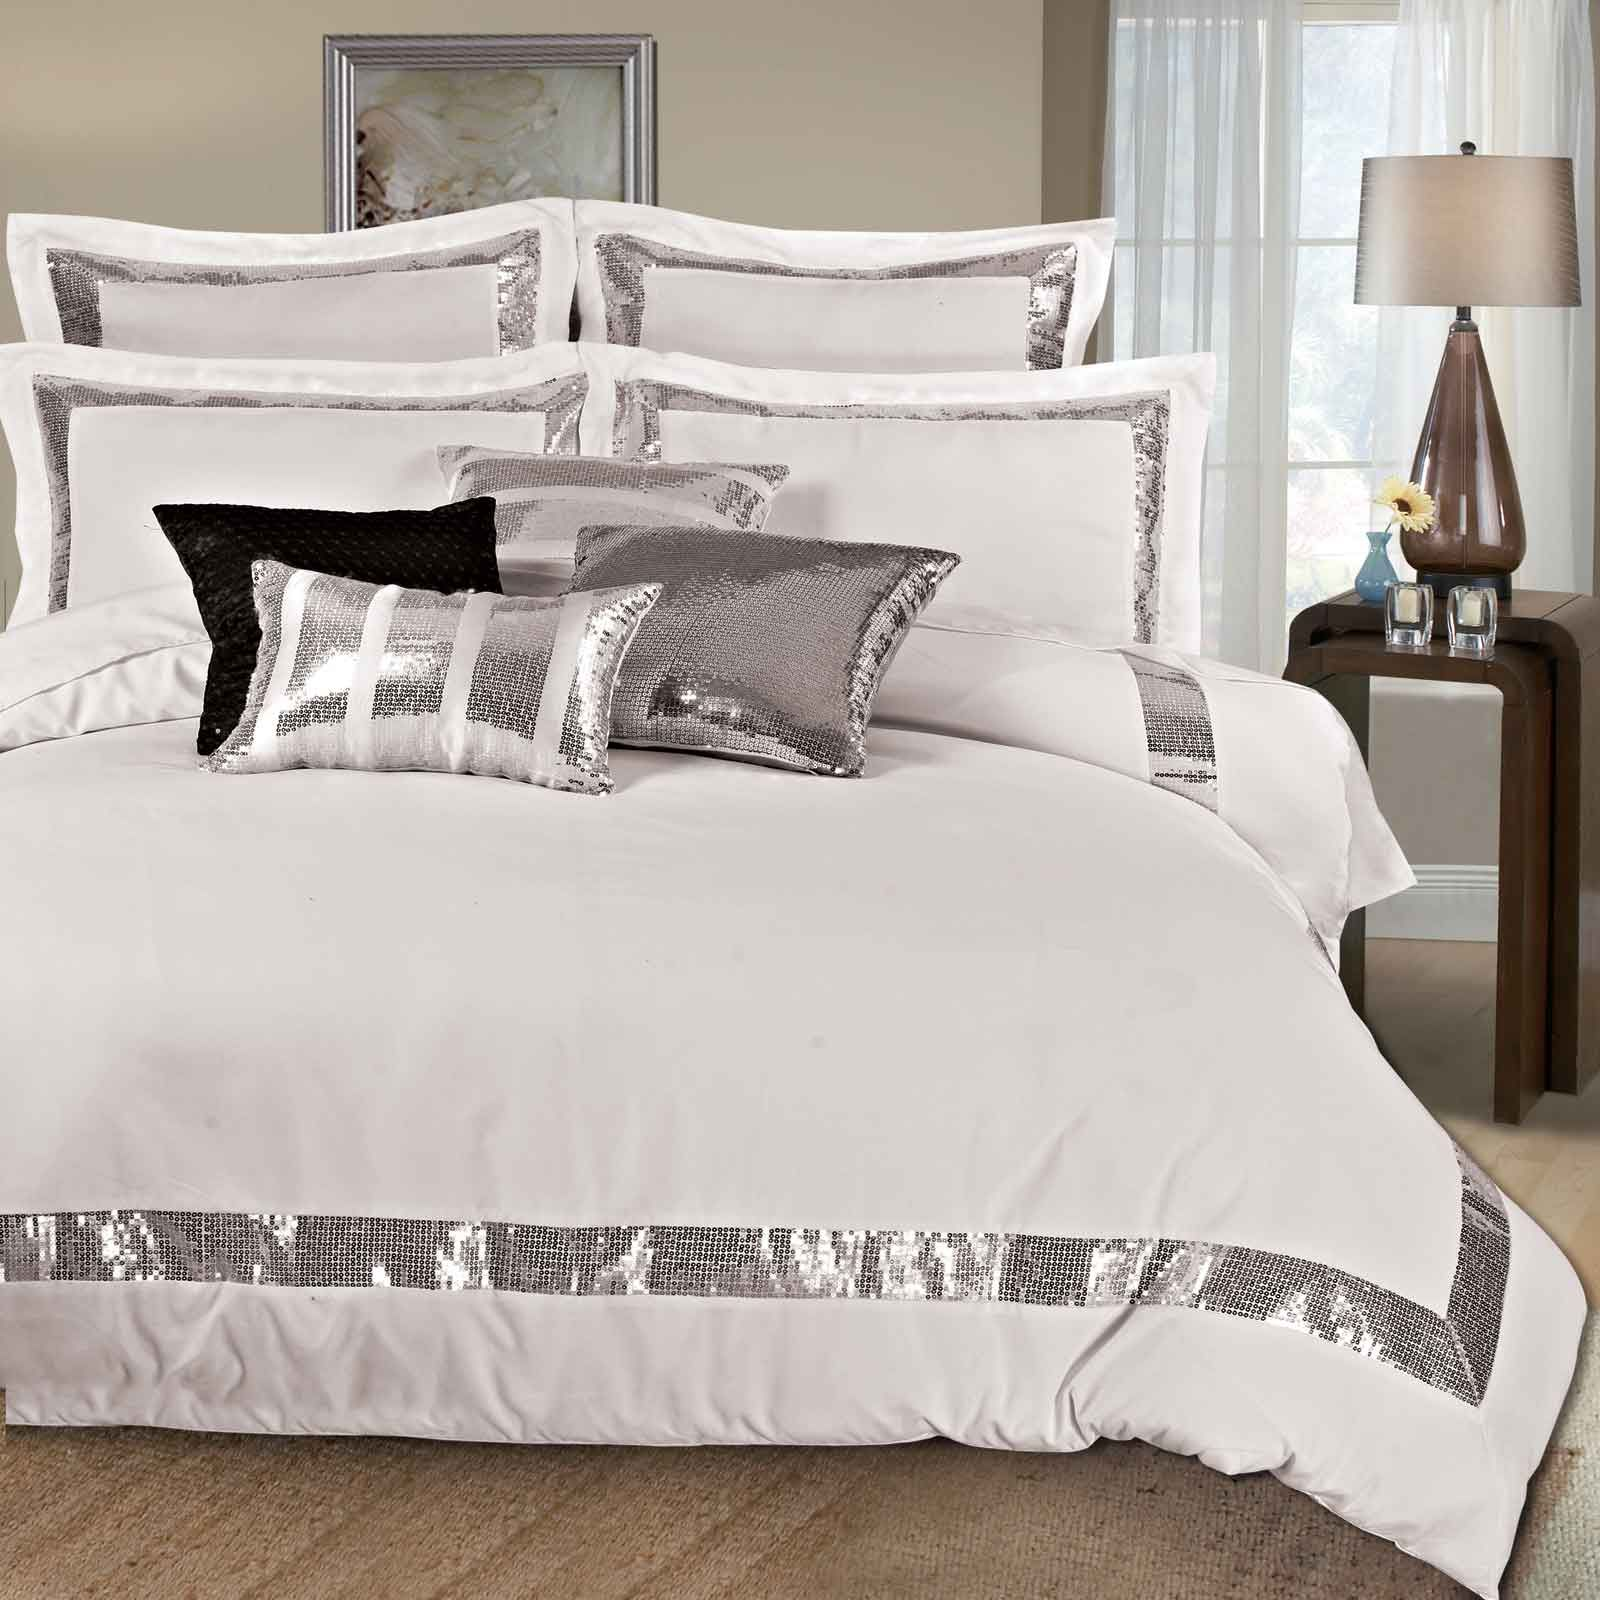 Sequins Queen King Size Duvet Quilt Cover Set 3pcs Bed Linen Bedding